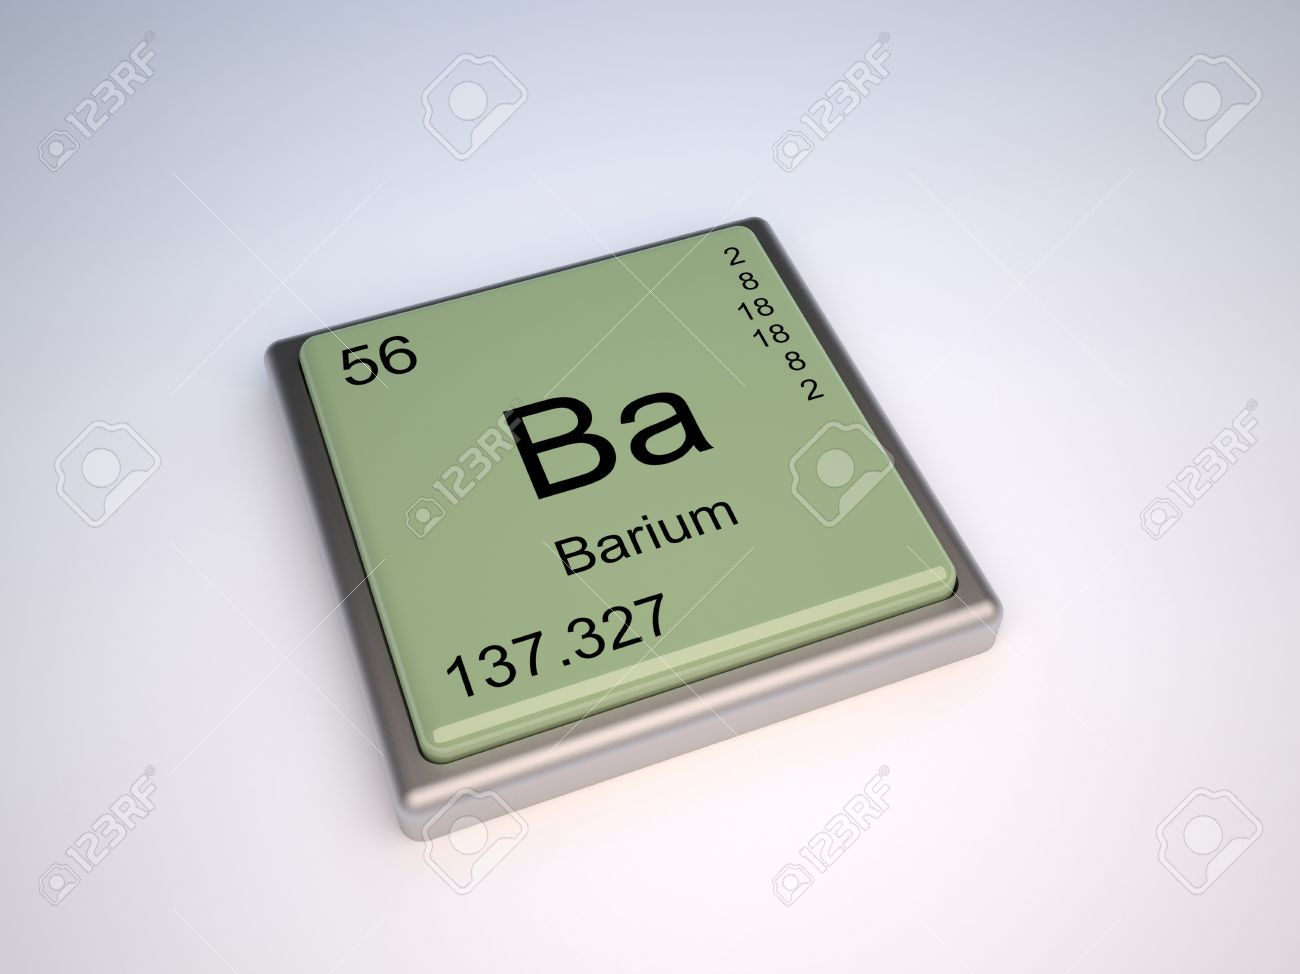 Barium chemical element of the periodic table with symbol ba stock barium chemical element of the periodic table with symbol ba stock photo 9257092 biocorpaavc Images